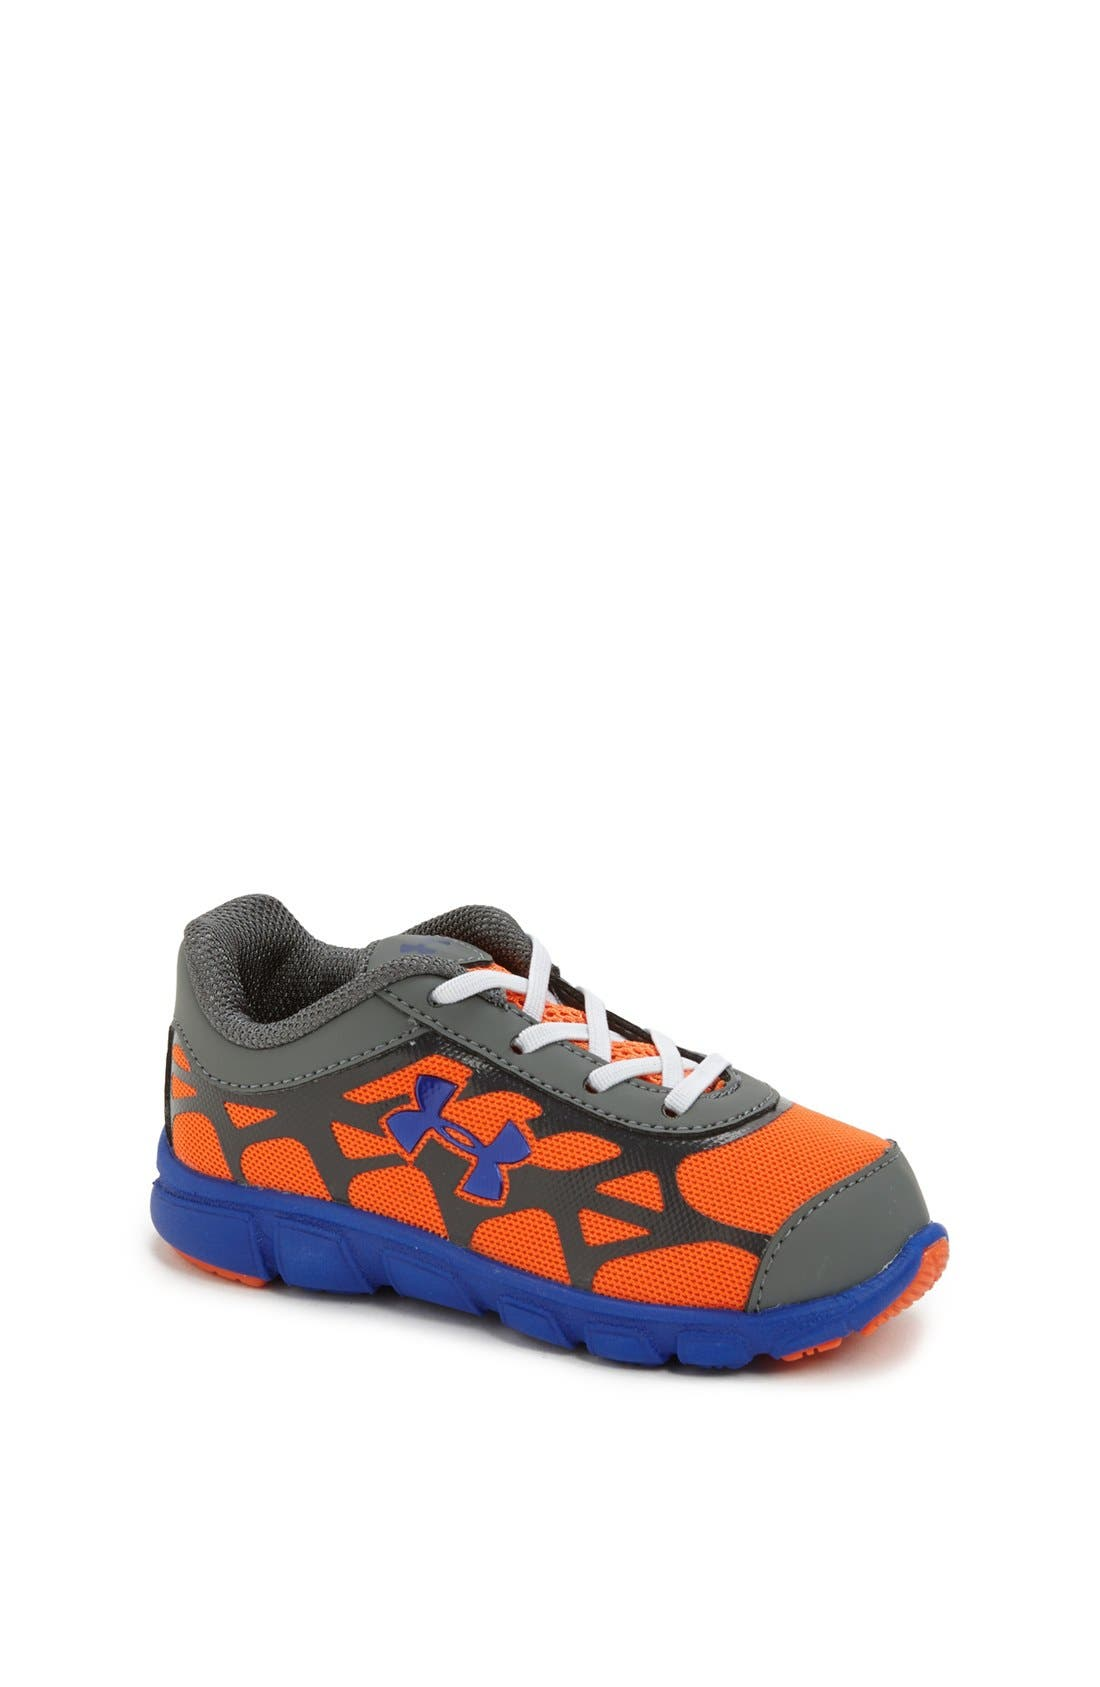 Alternate Image 1 Selected - Under Armour 'Spine™ Vice' Athletic Shoe (Baby, Walker & Toddler)